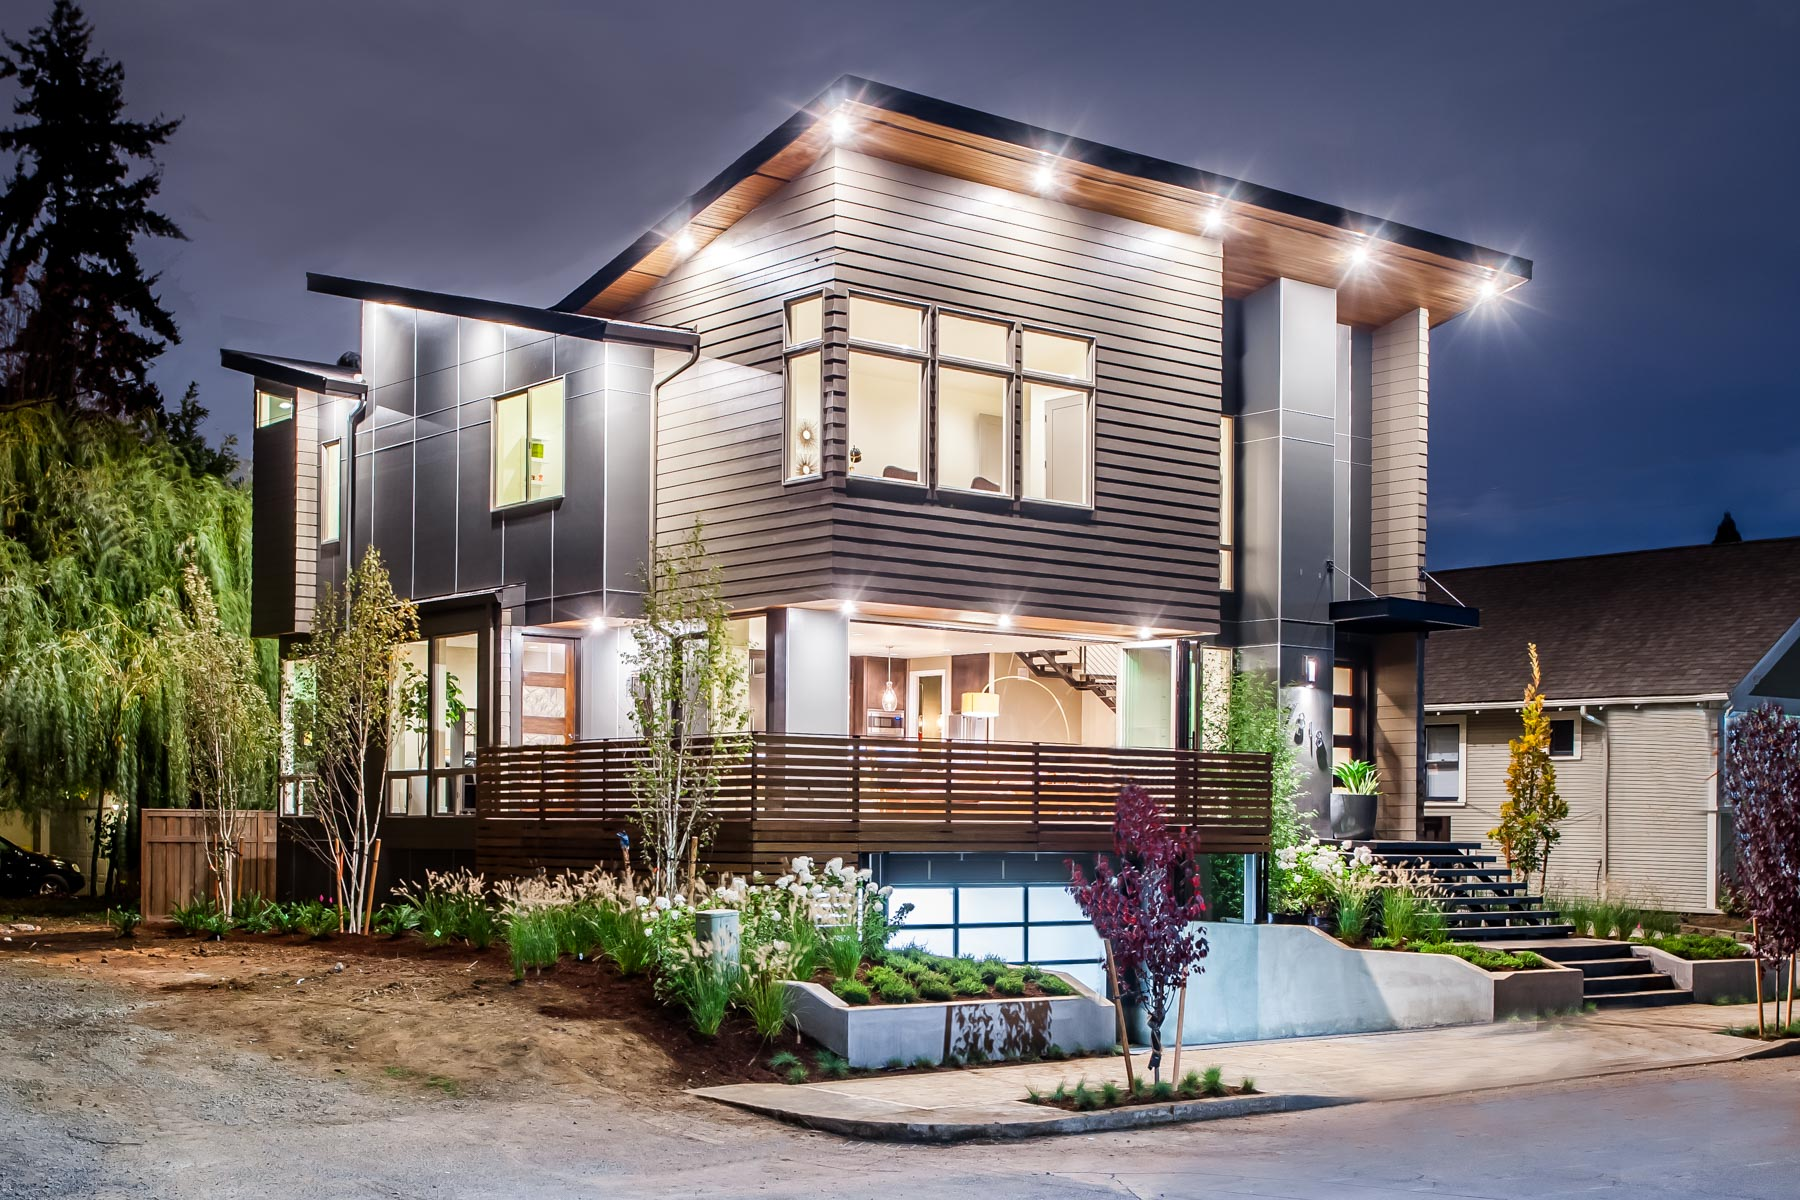 5th annual portland modern home tour features best in Contemporary homes portland